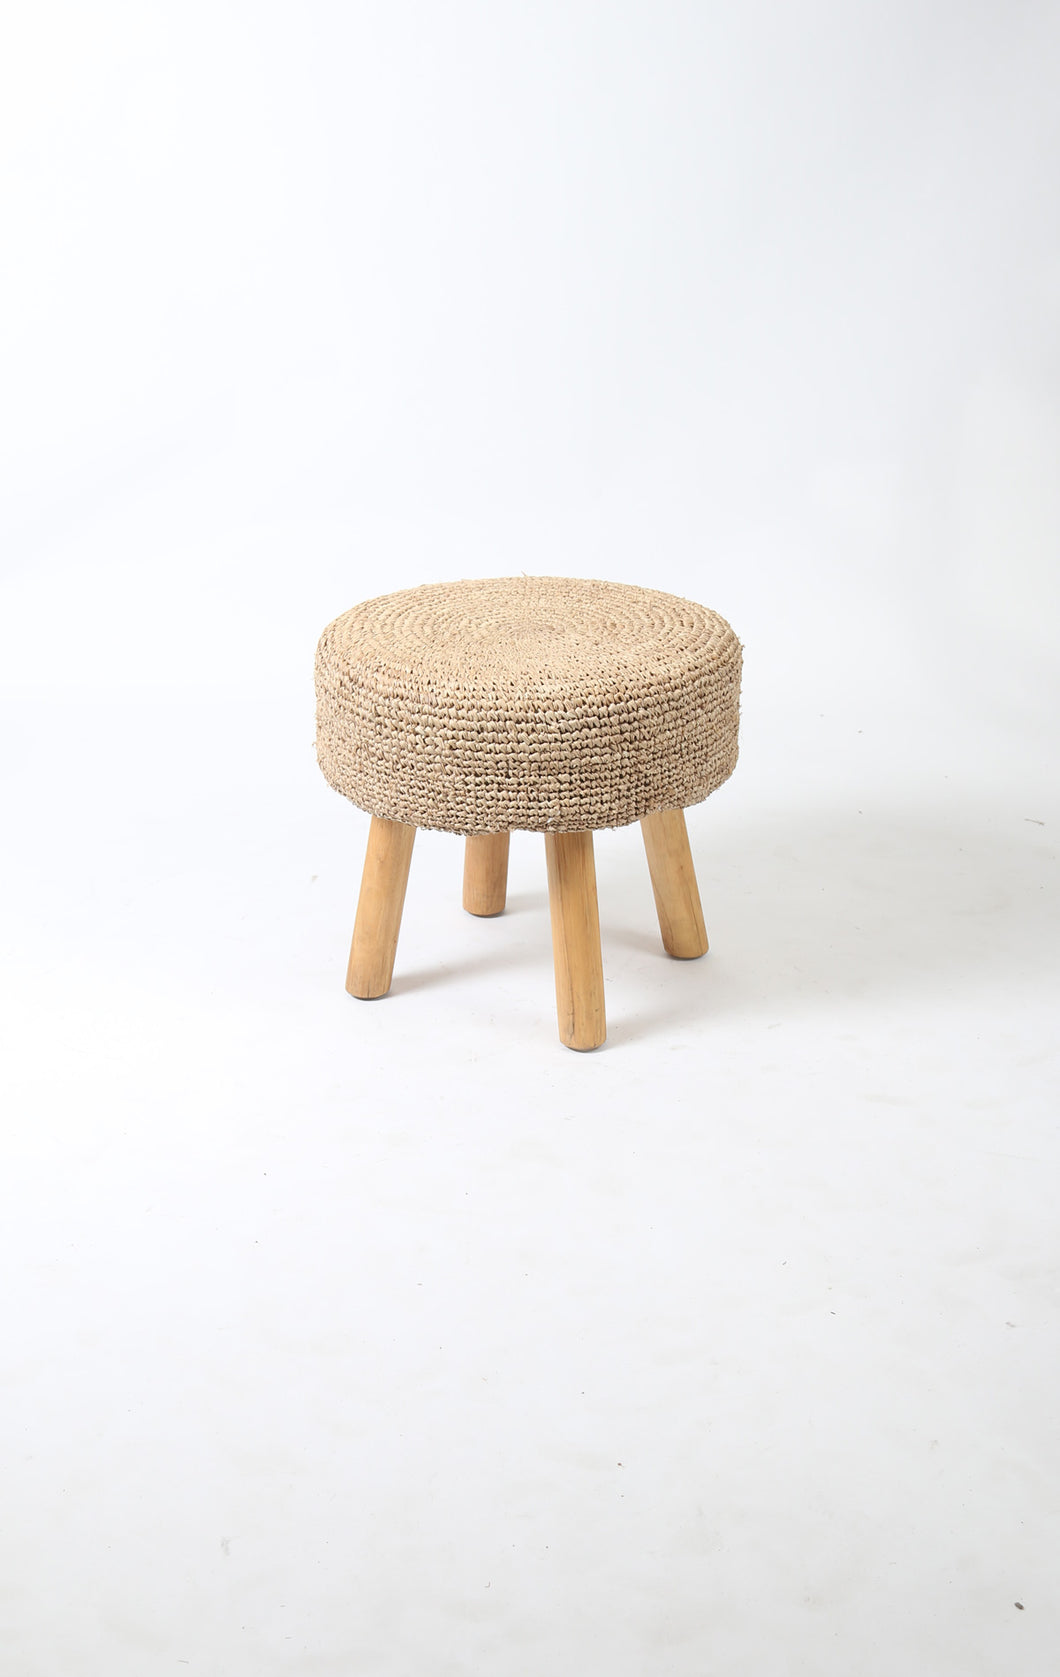 Padded Sea Grass Stool with Four Wooden Teak Legs